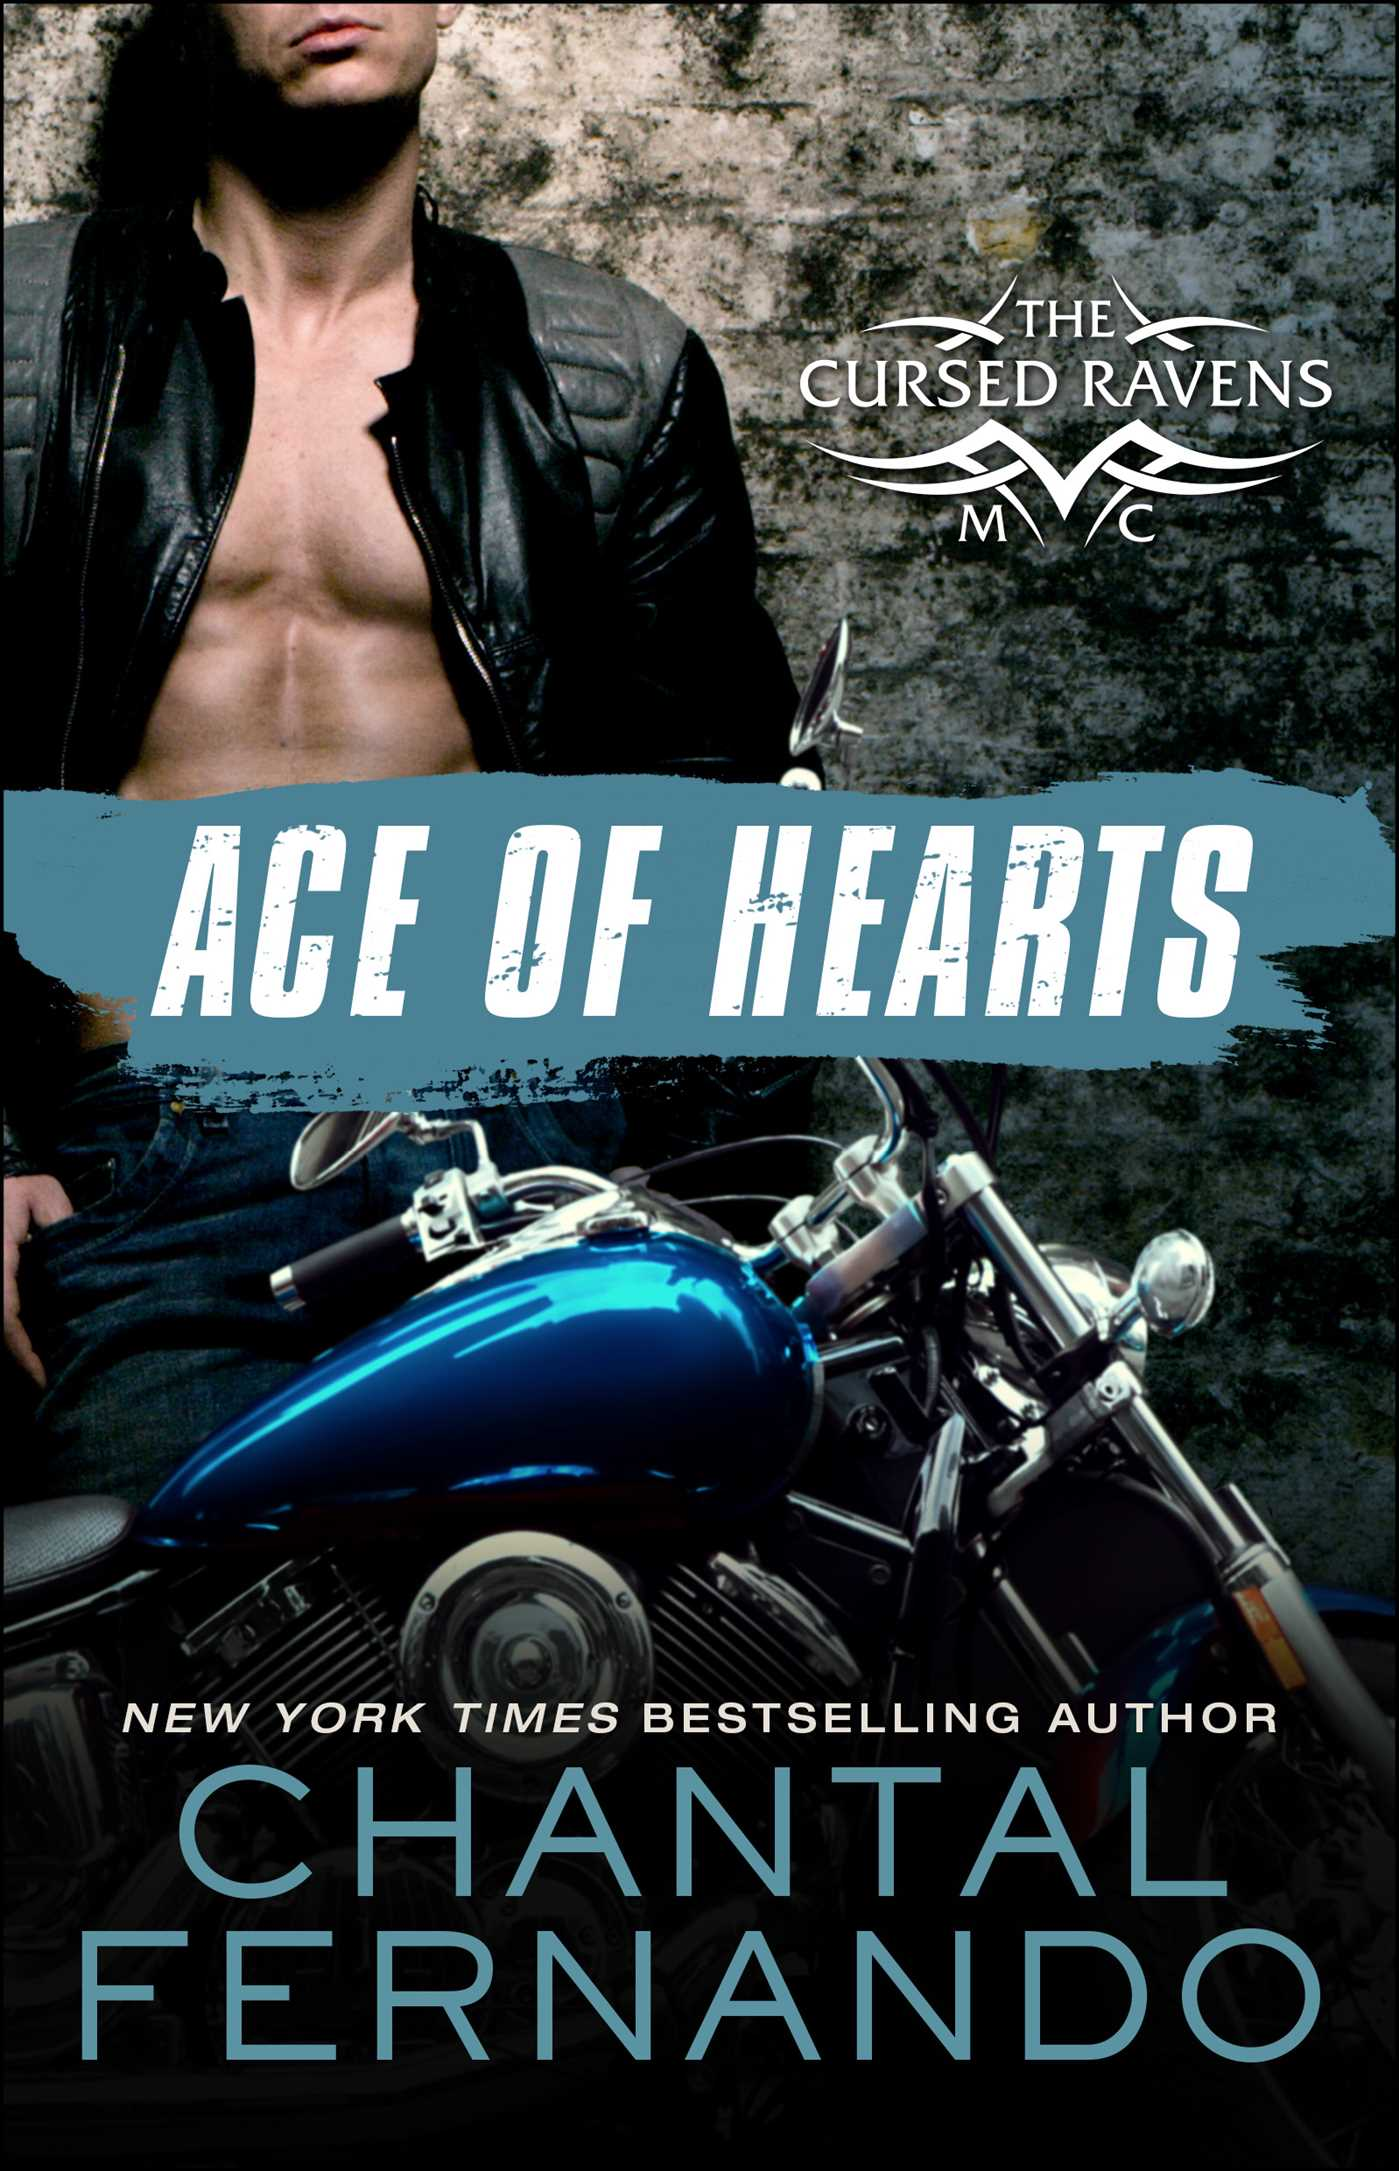 Ace of hearts 9781501172960 hr